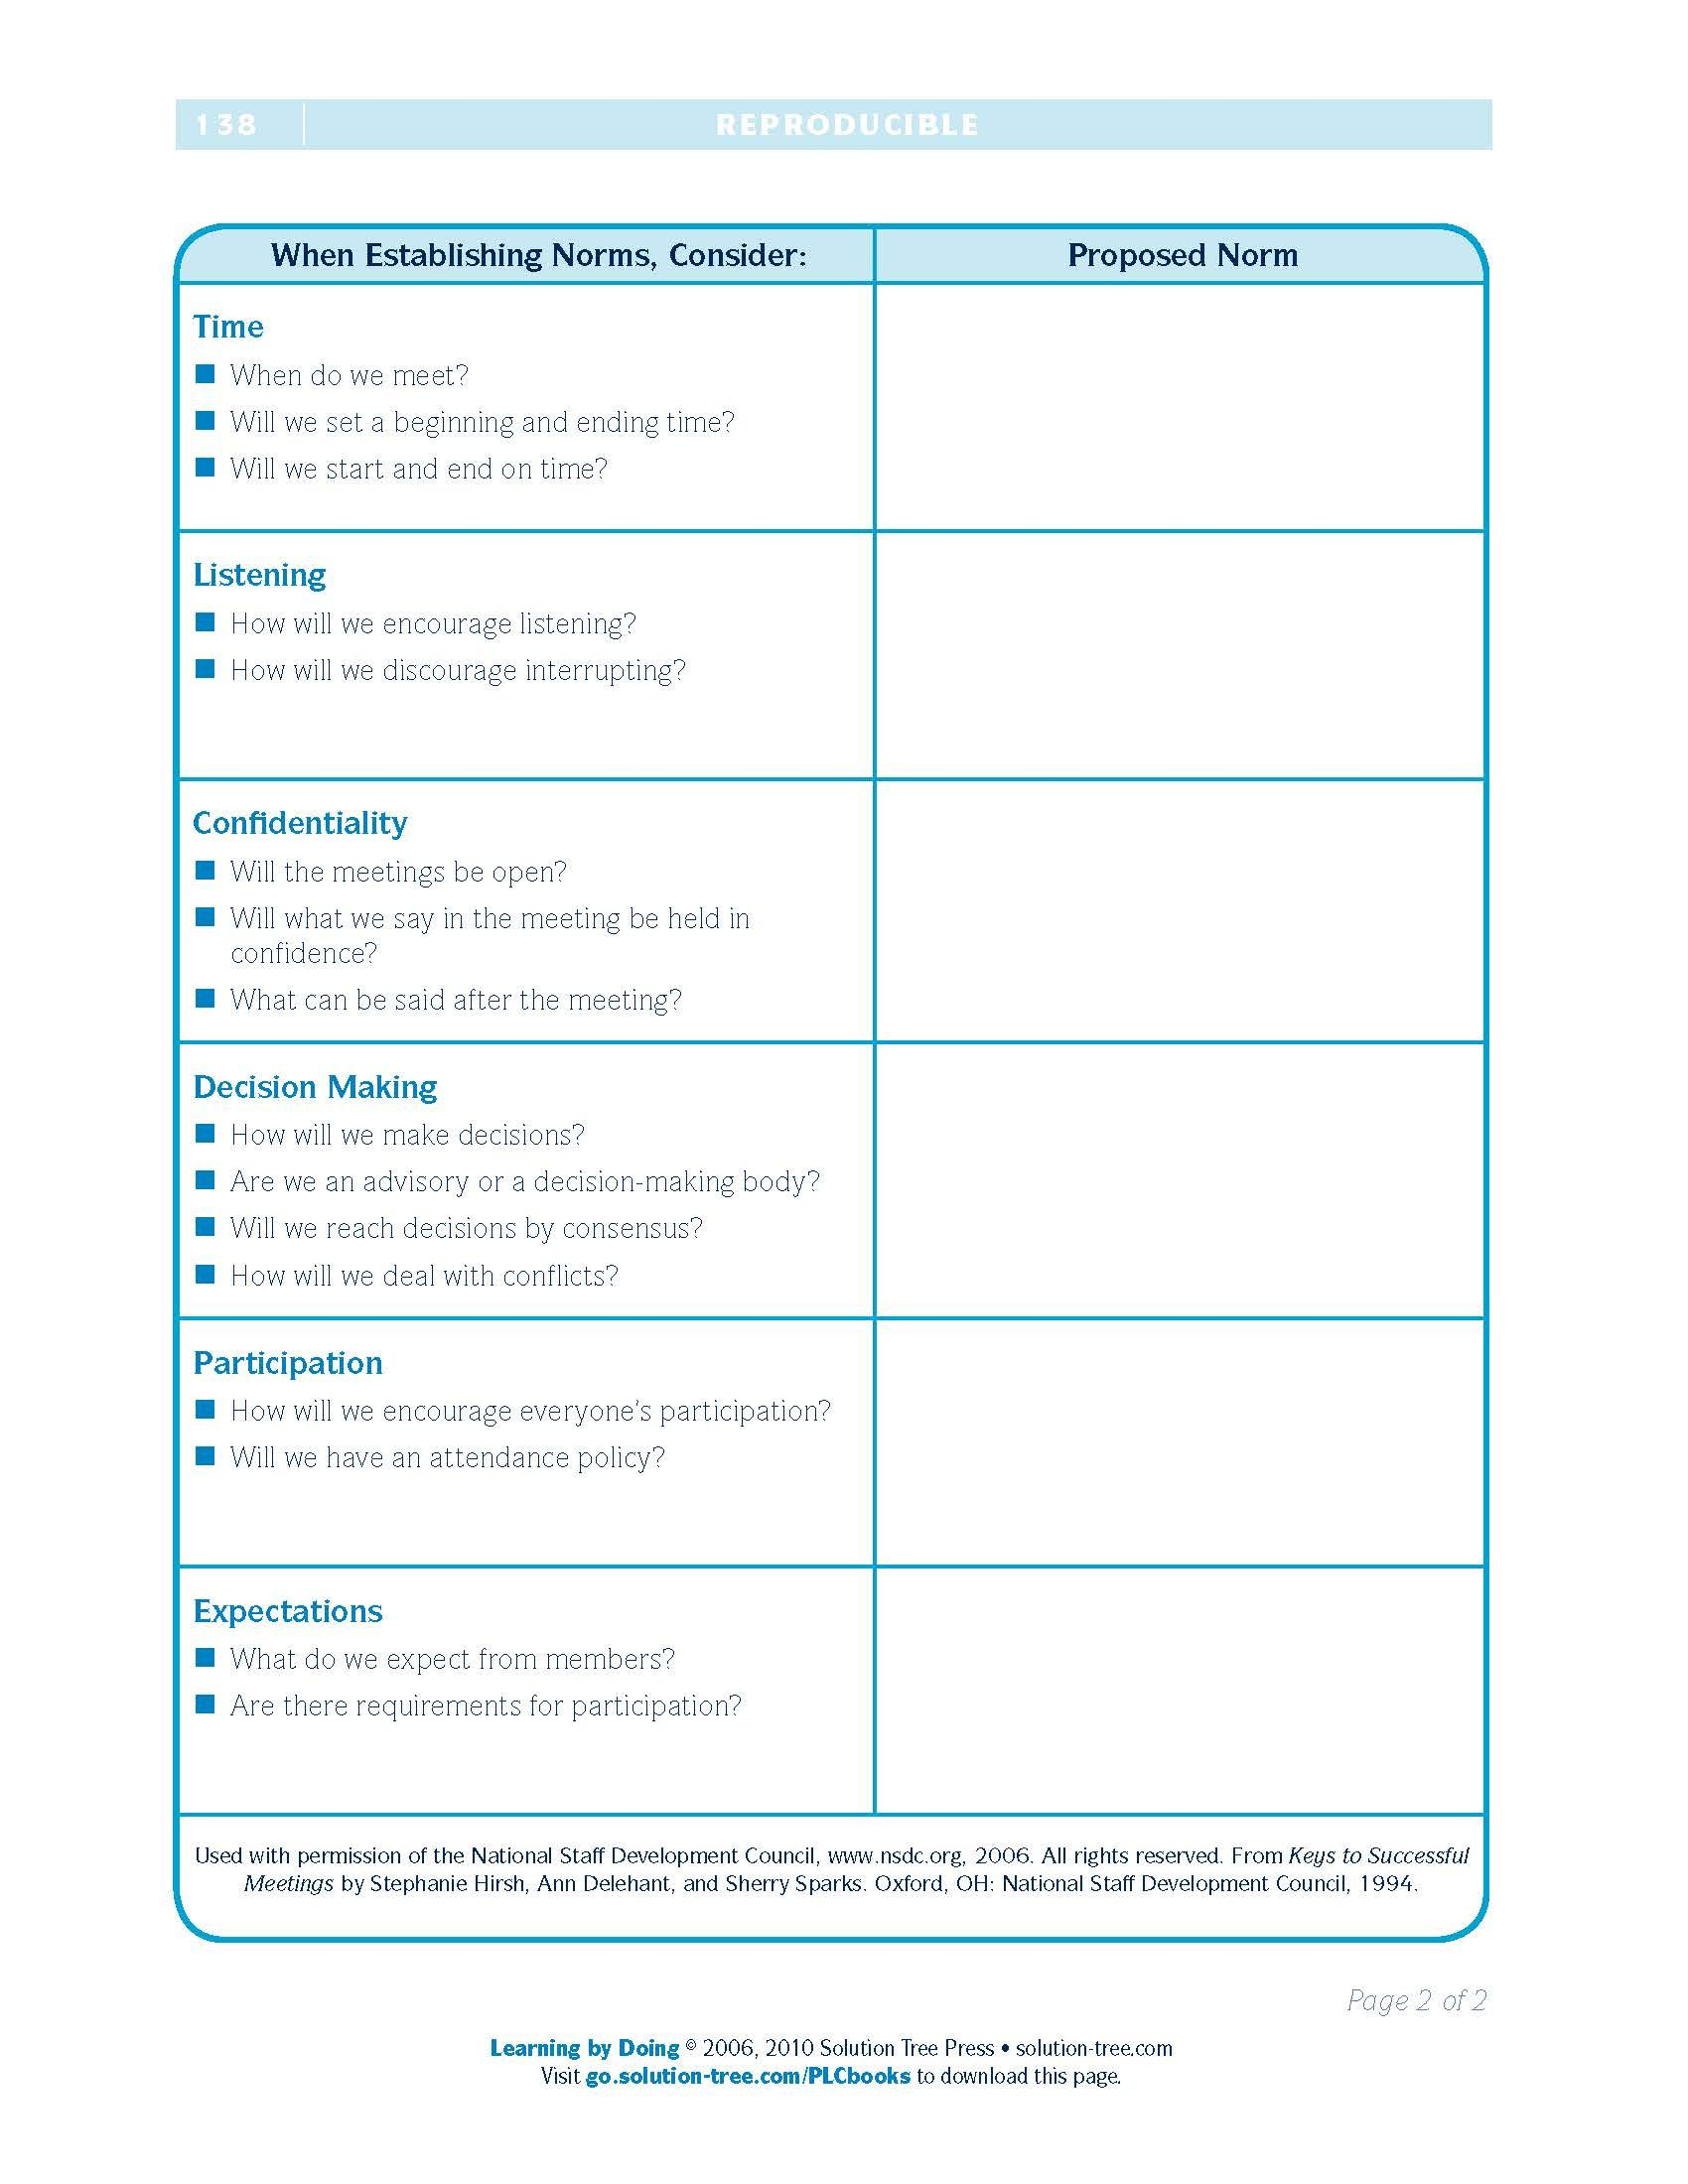 Developing Norms Page 2